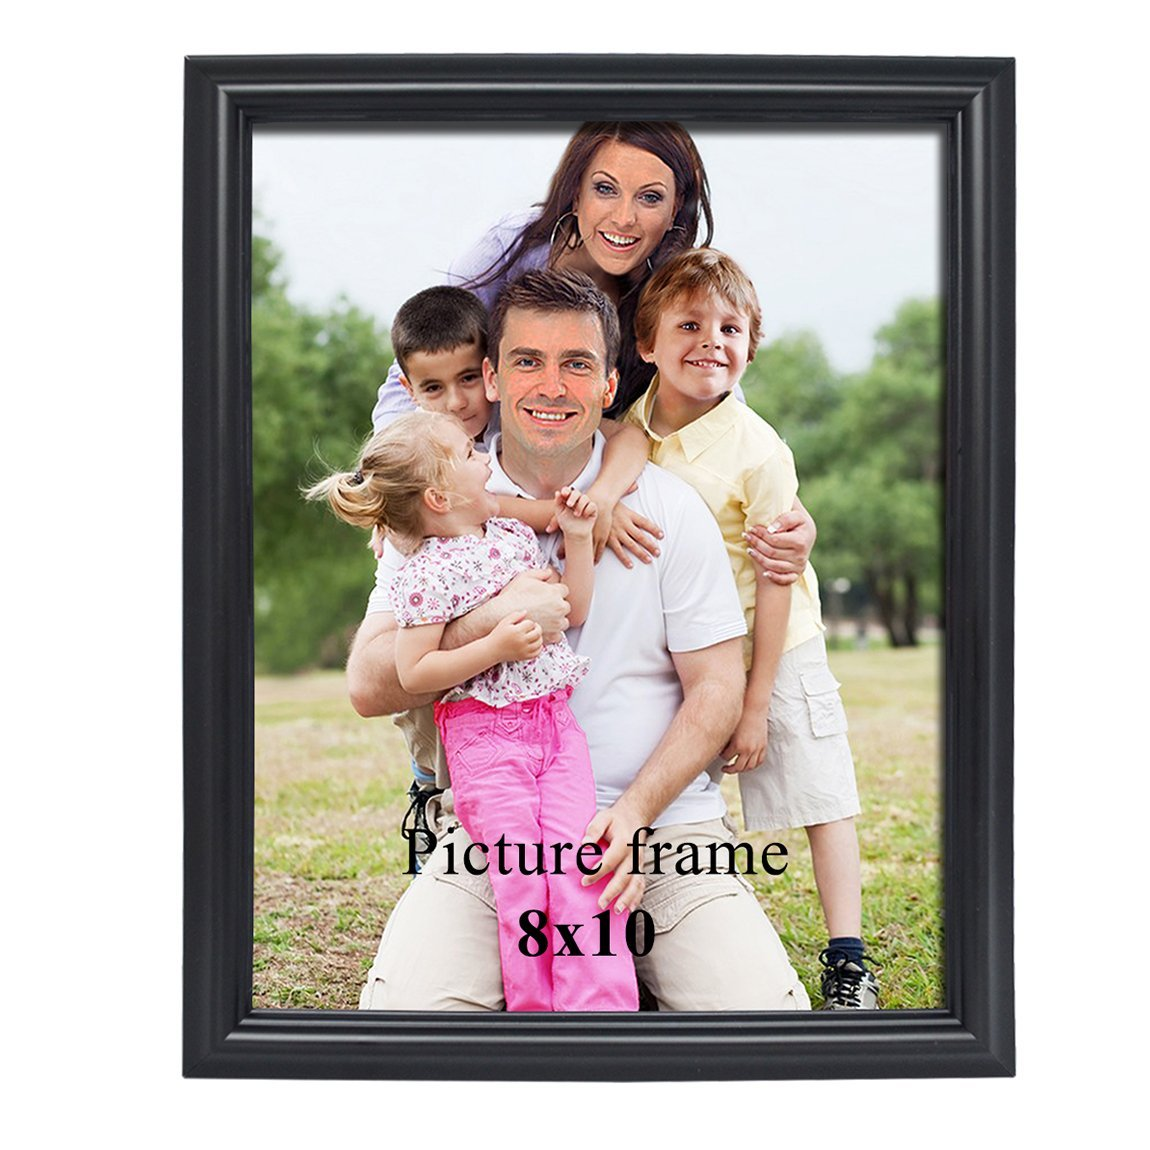 PETAFLOP 8x10 picture frame Black 8 by 10-inch Decorative Poster Frame